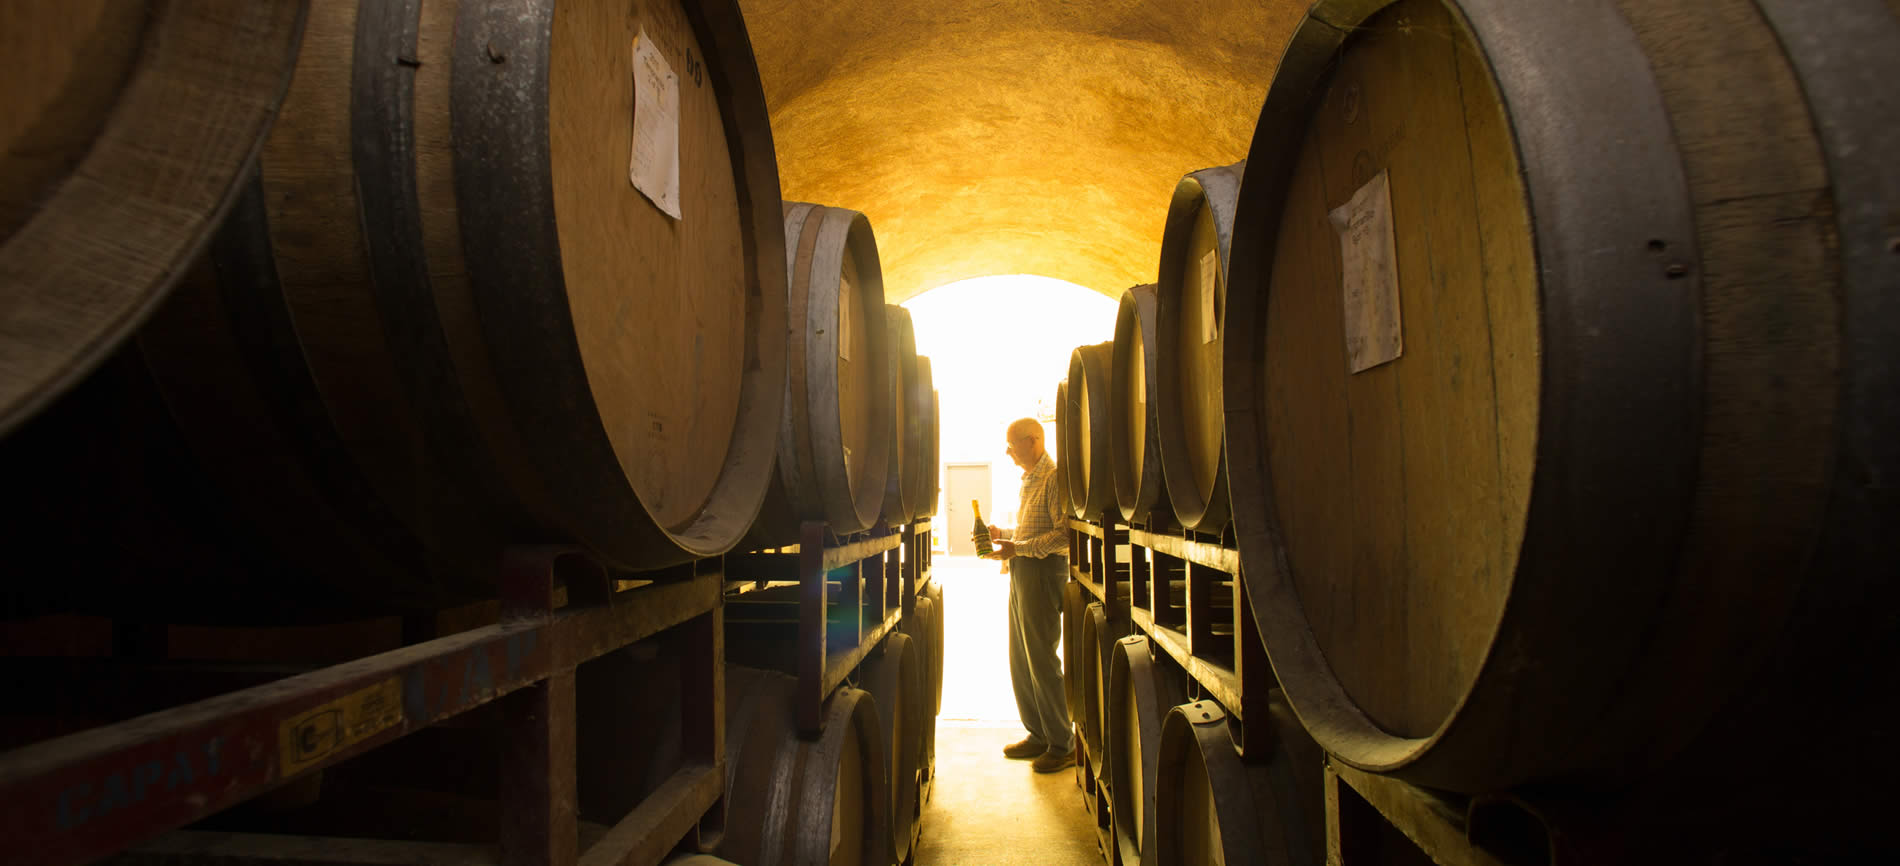 napa valley best wine tours and wine tasting places